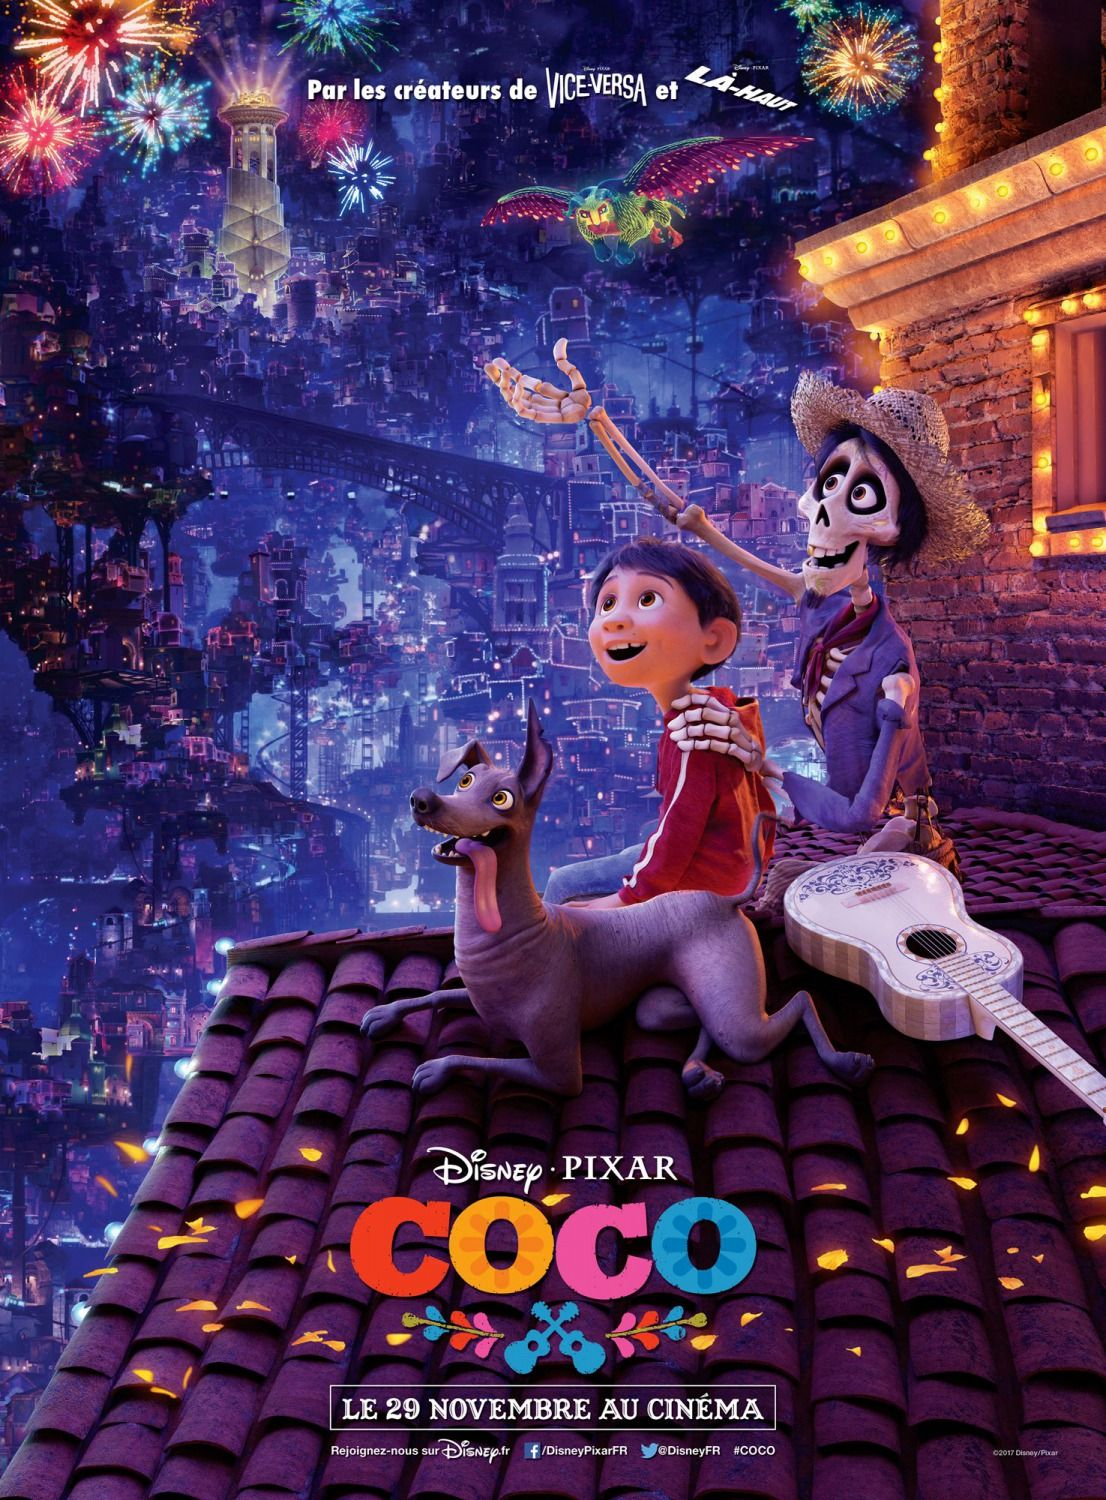 Return to the main poster page for Coco (8 of 8) Full